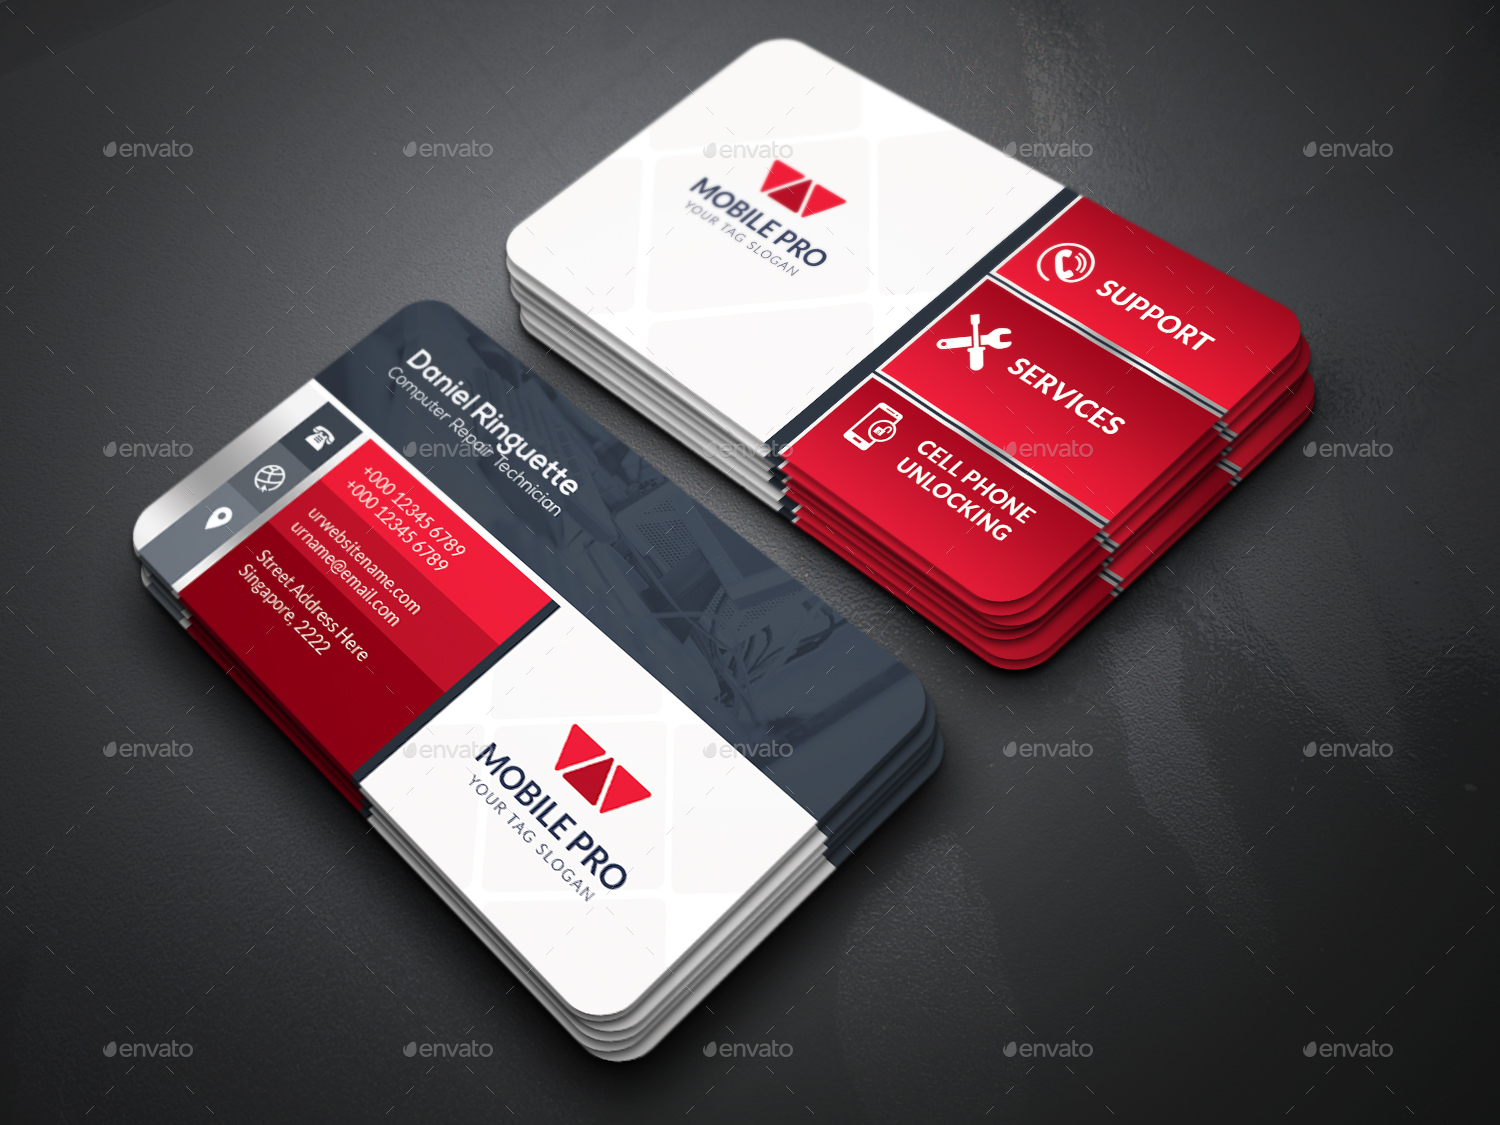 Mobile repair service business card by createart for Cell phone repair business cards